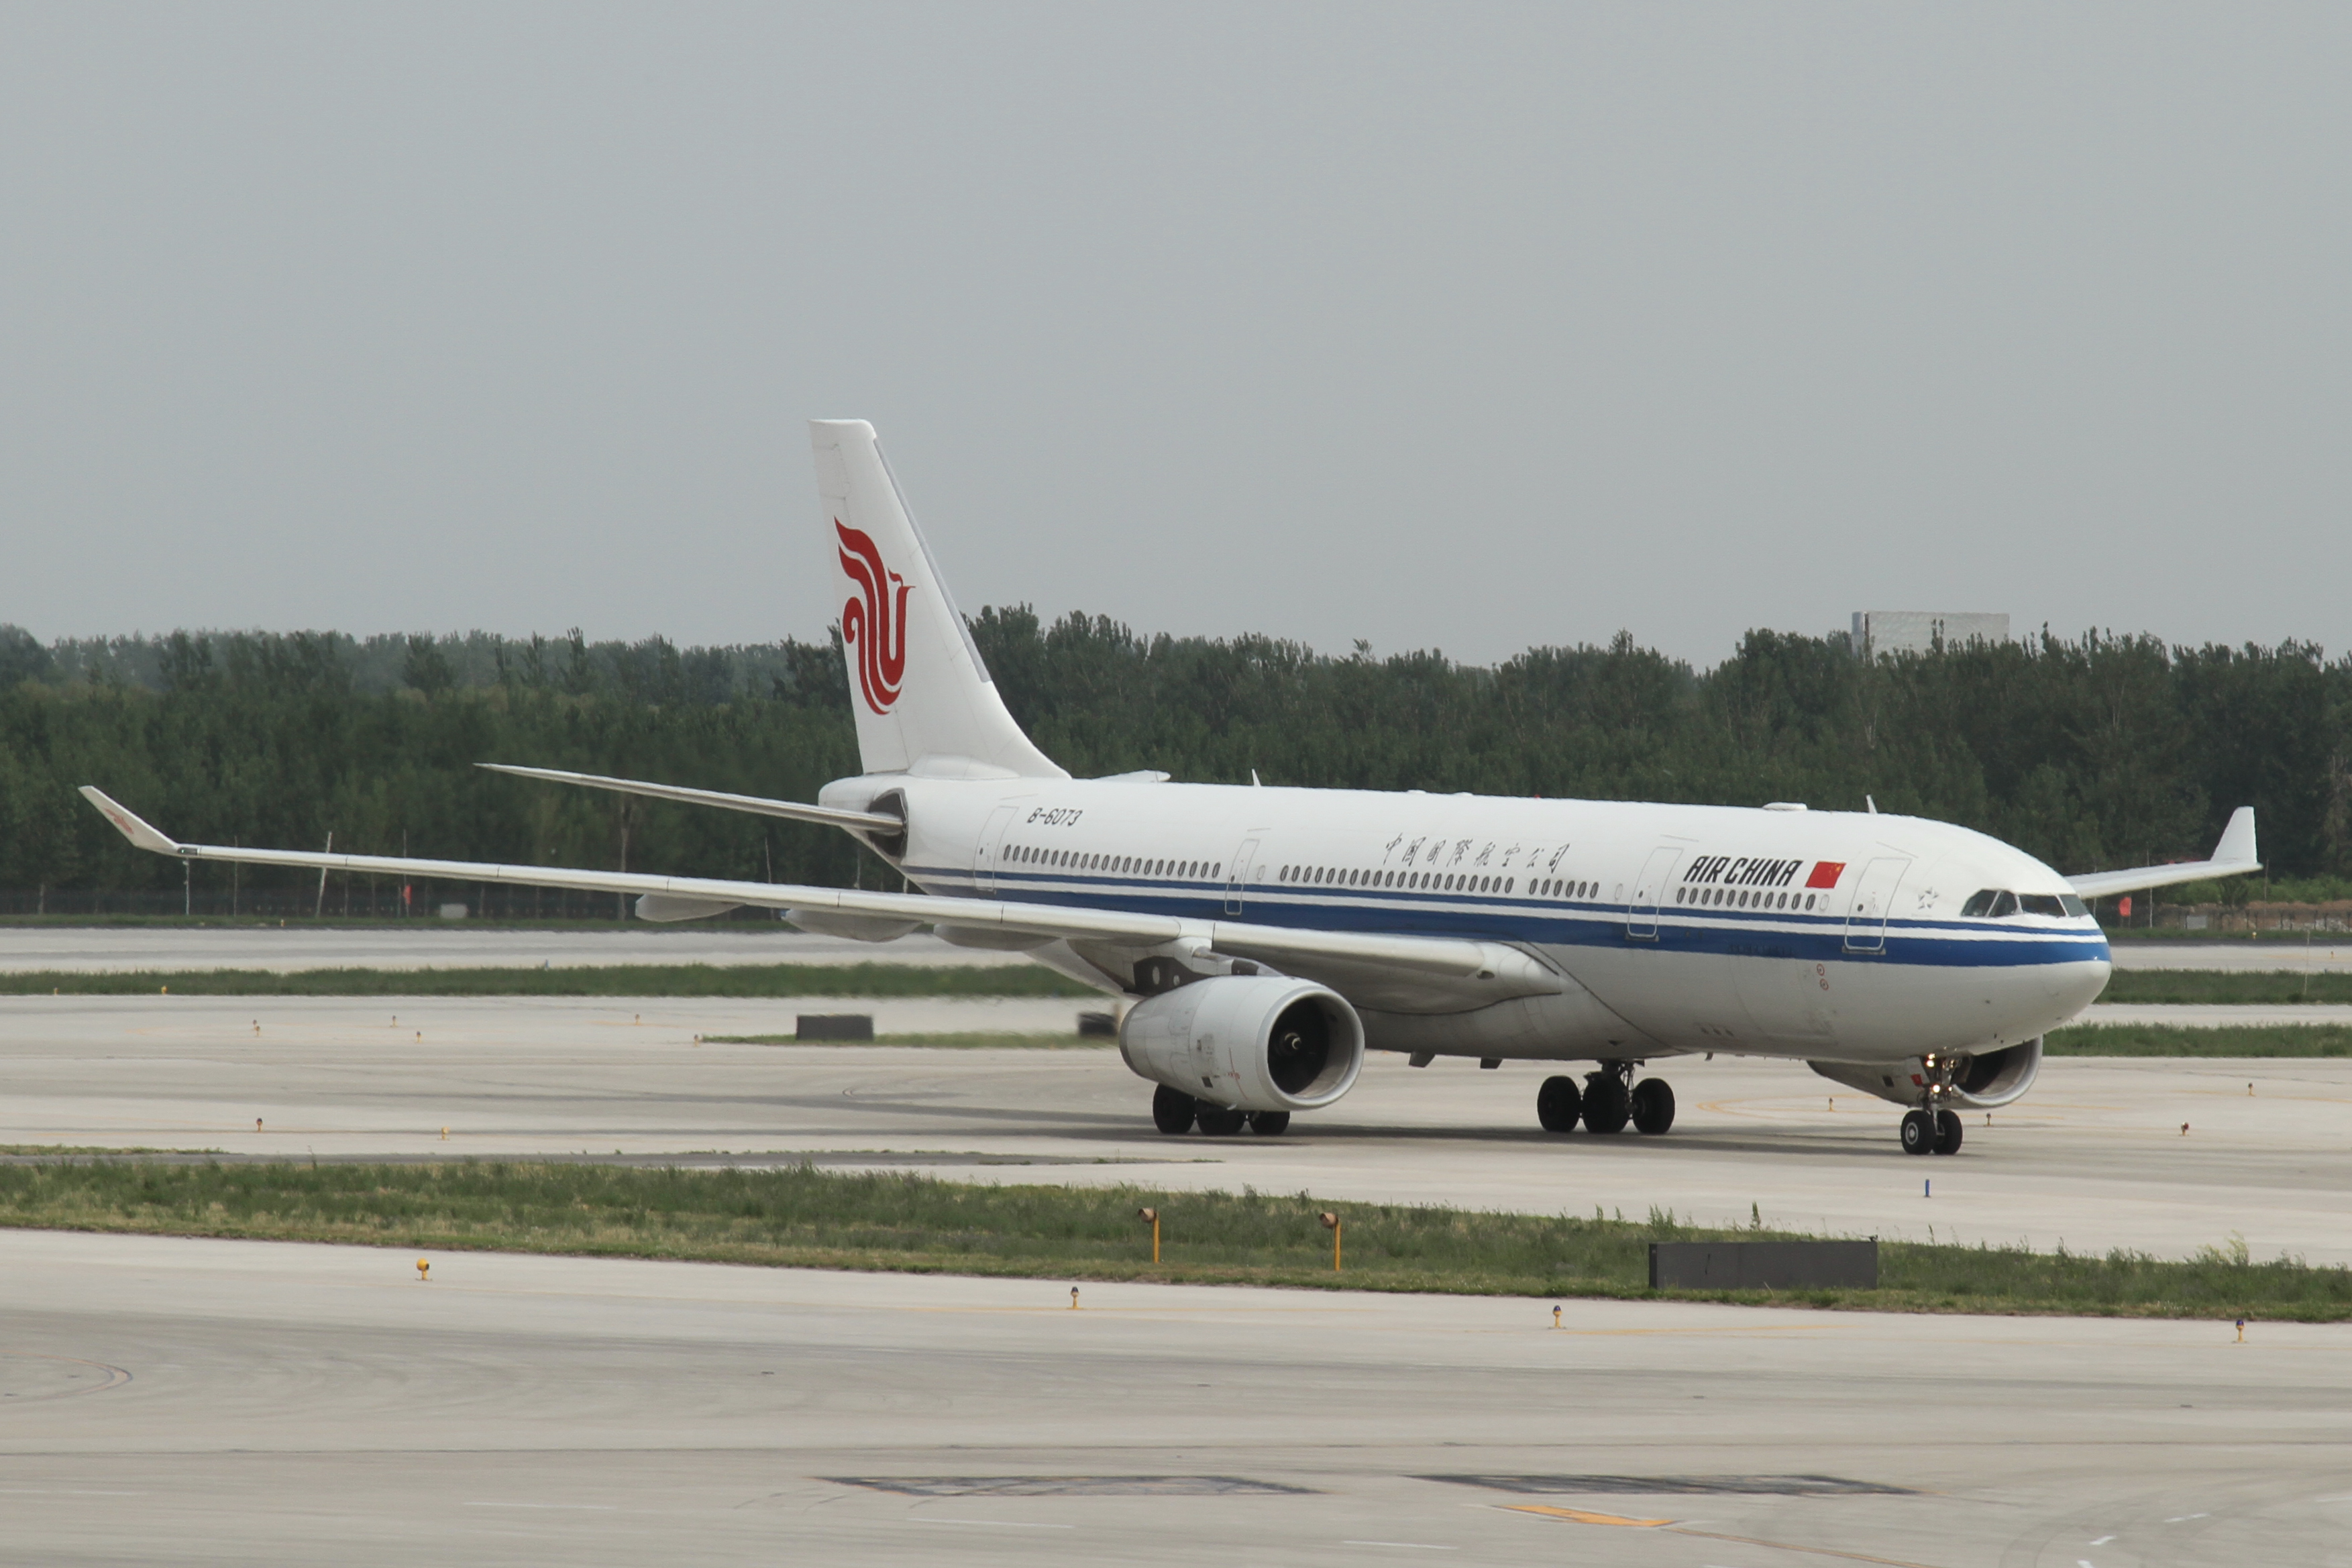 Airbus A330-200 fra Air China. (Foto: Kentaro Lemoto)